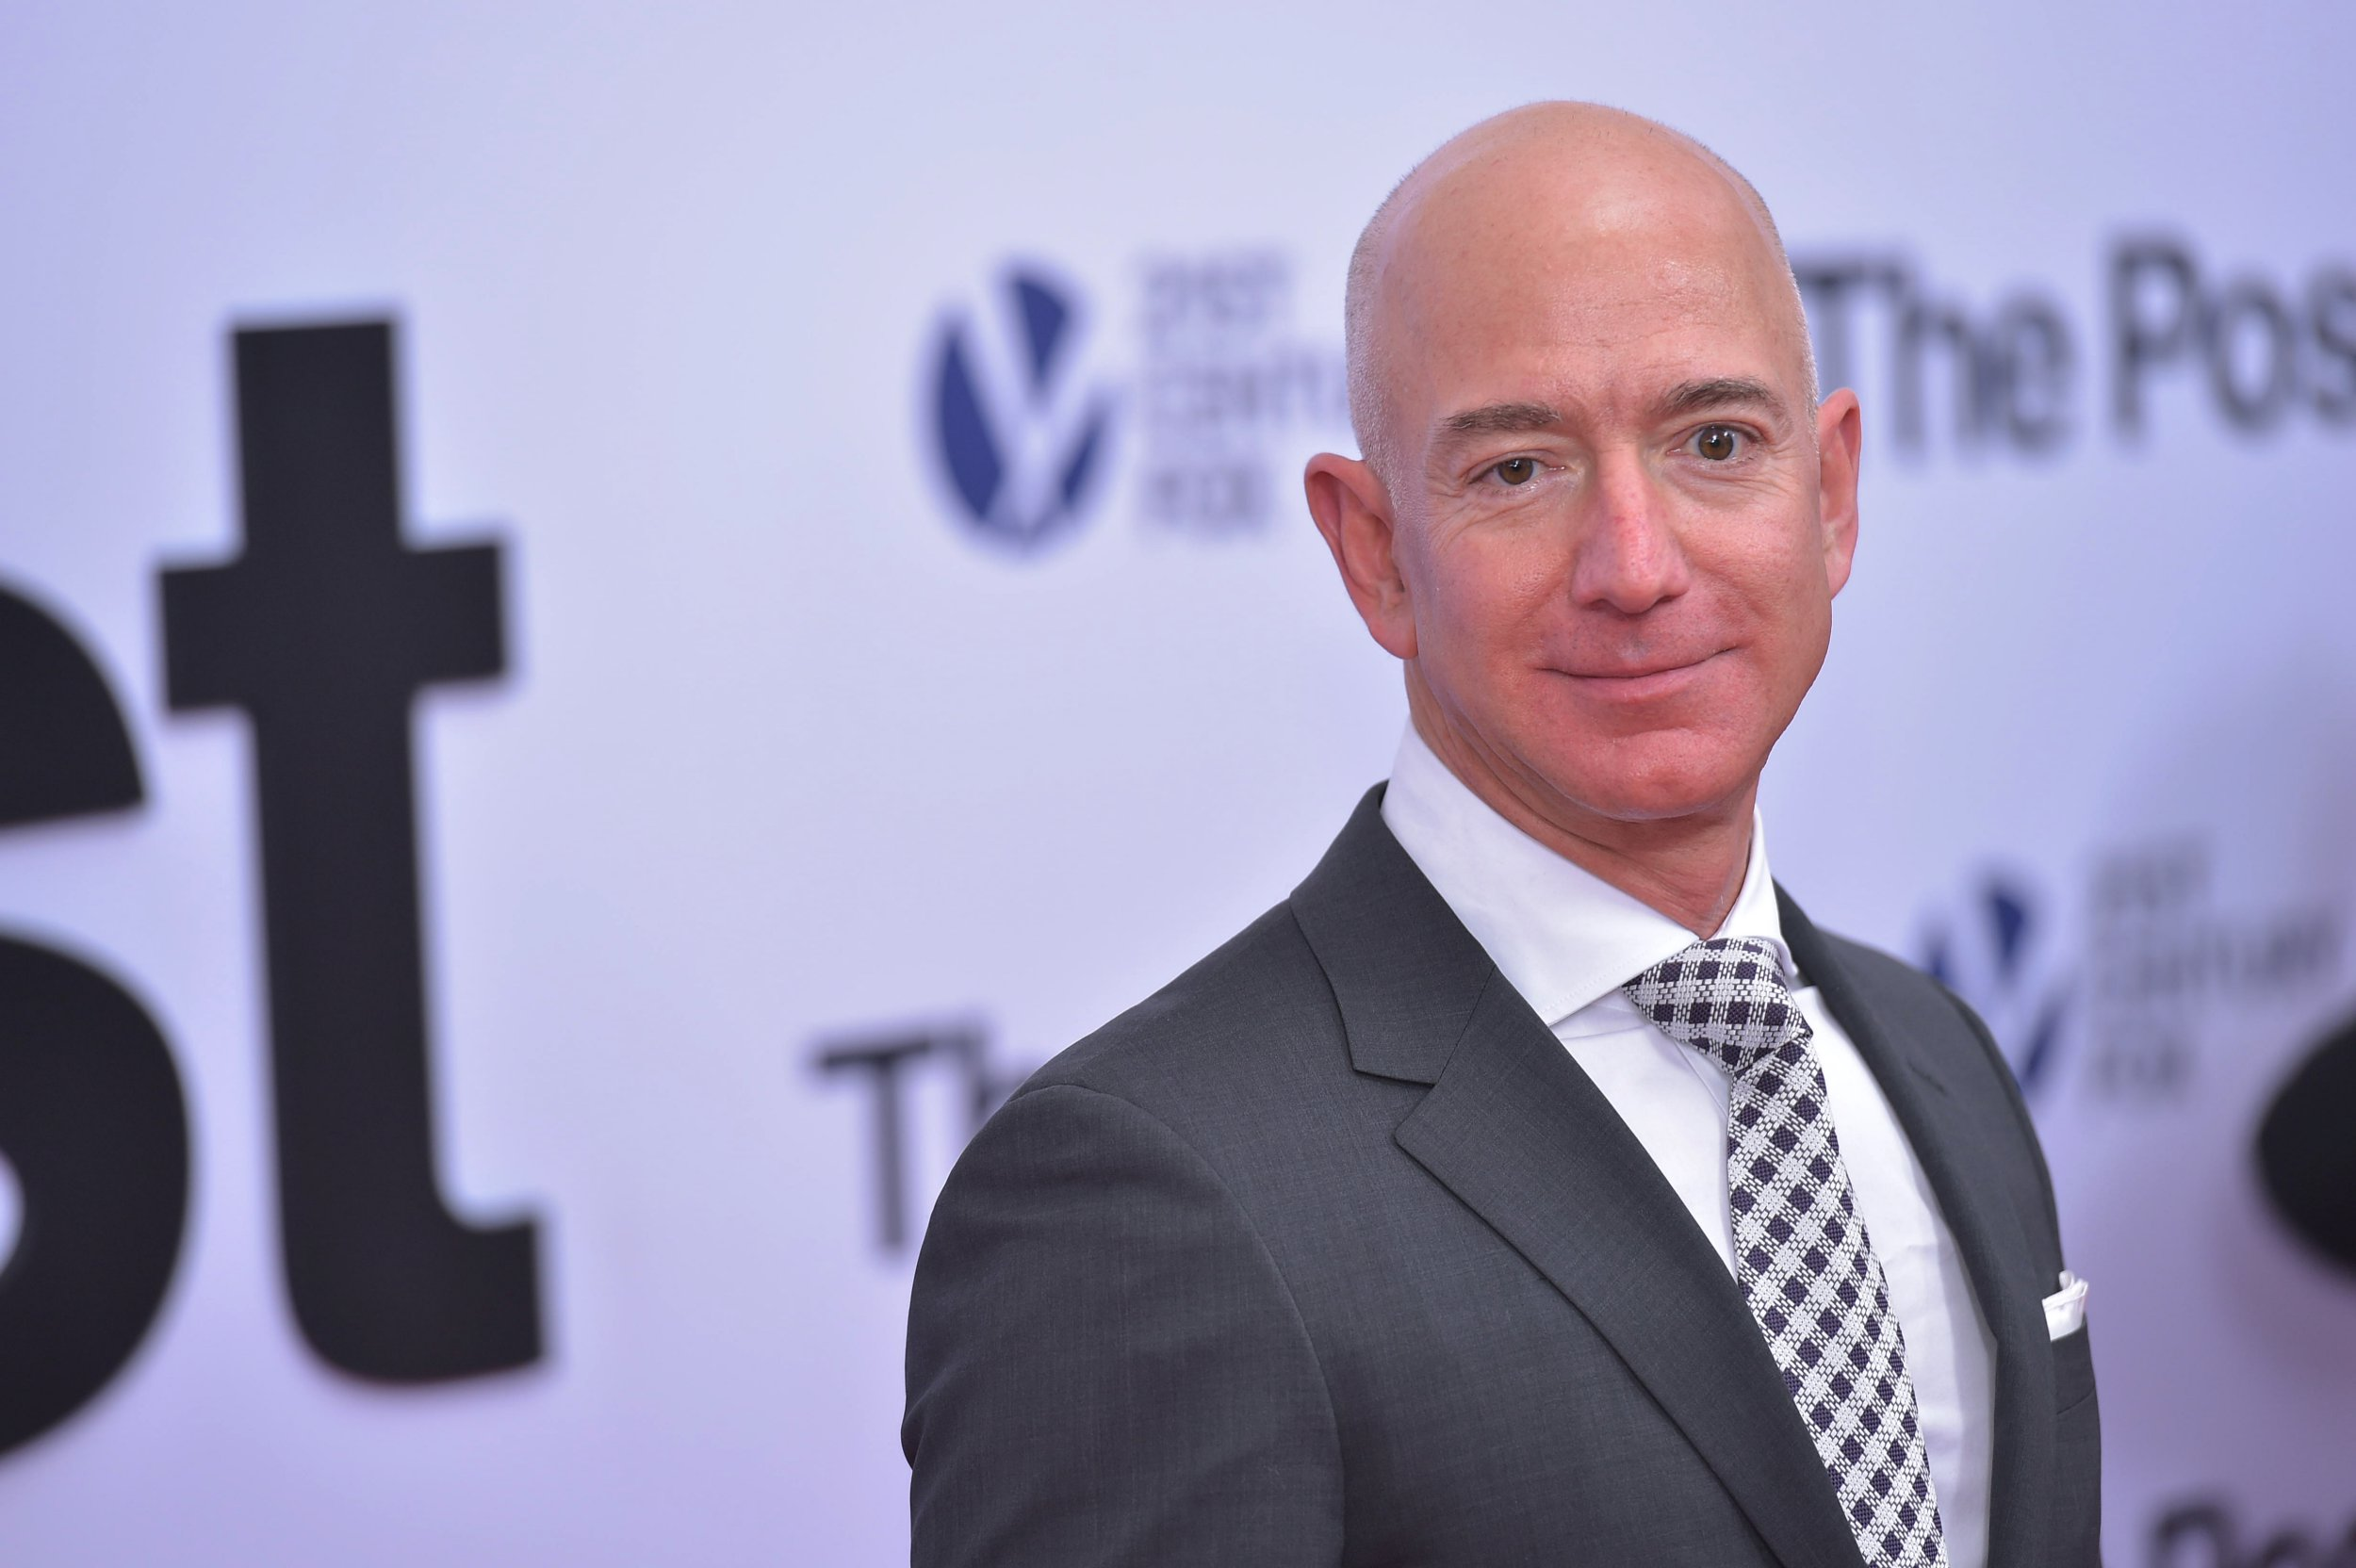 """Amazon CEO Jeff Bezos arrives for the premiere of """"The Post"""" on December 14, 2017, in Washington, DC. / AFP PHOTO / Mandel NGAN (Photo credit should read MANDEL NGAN/AFP/Getty Images)"""